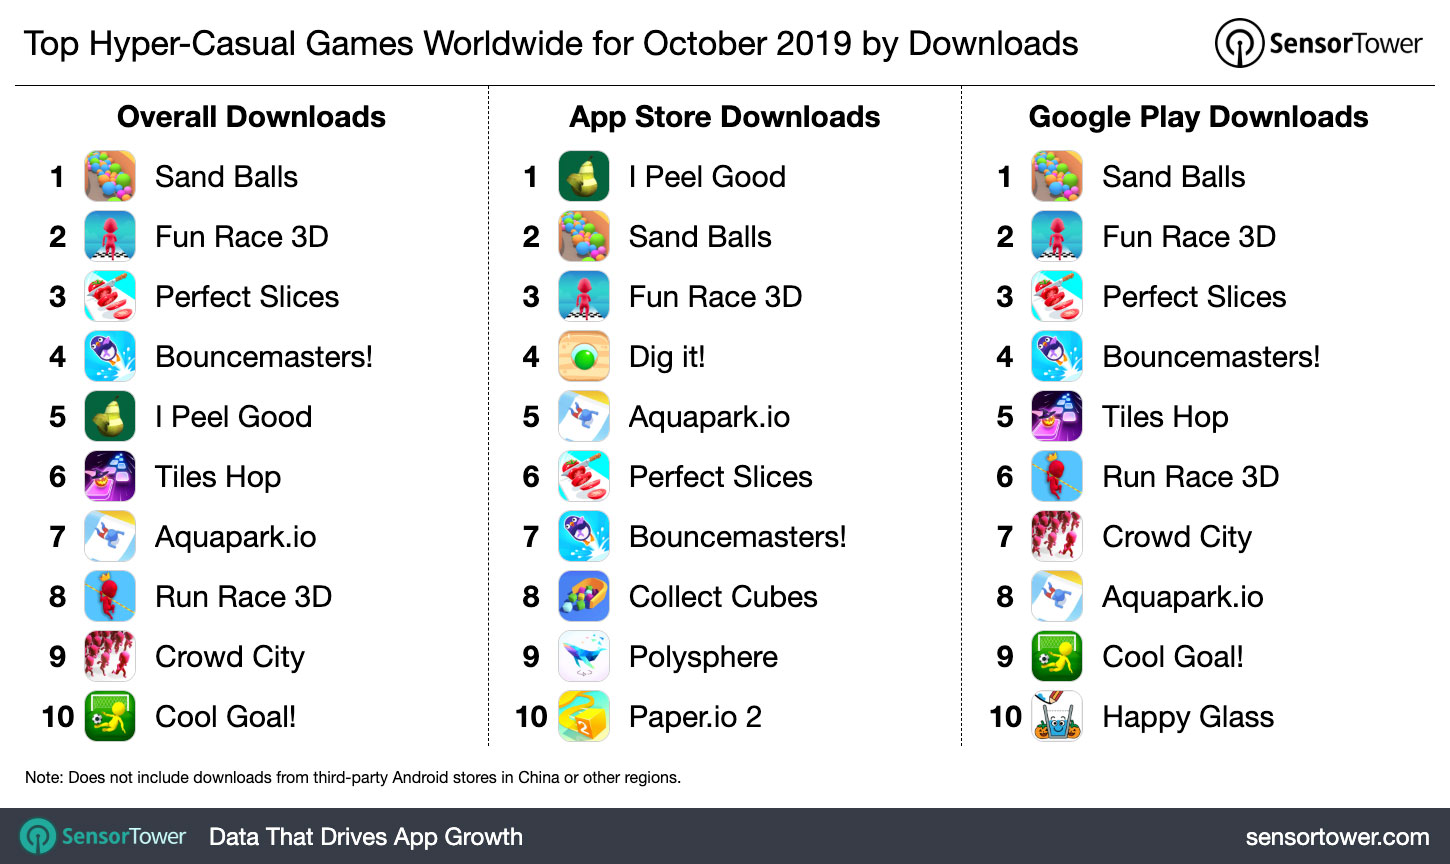 Top Hyper Casual Games Worldwide for October 10 by Downloads